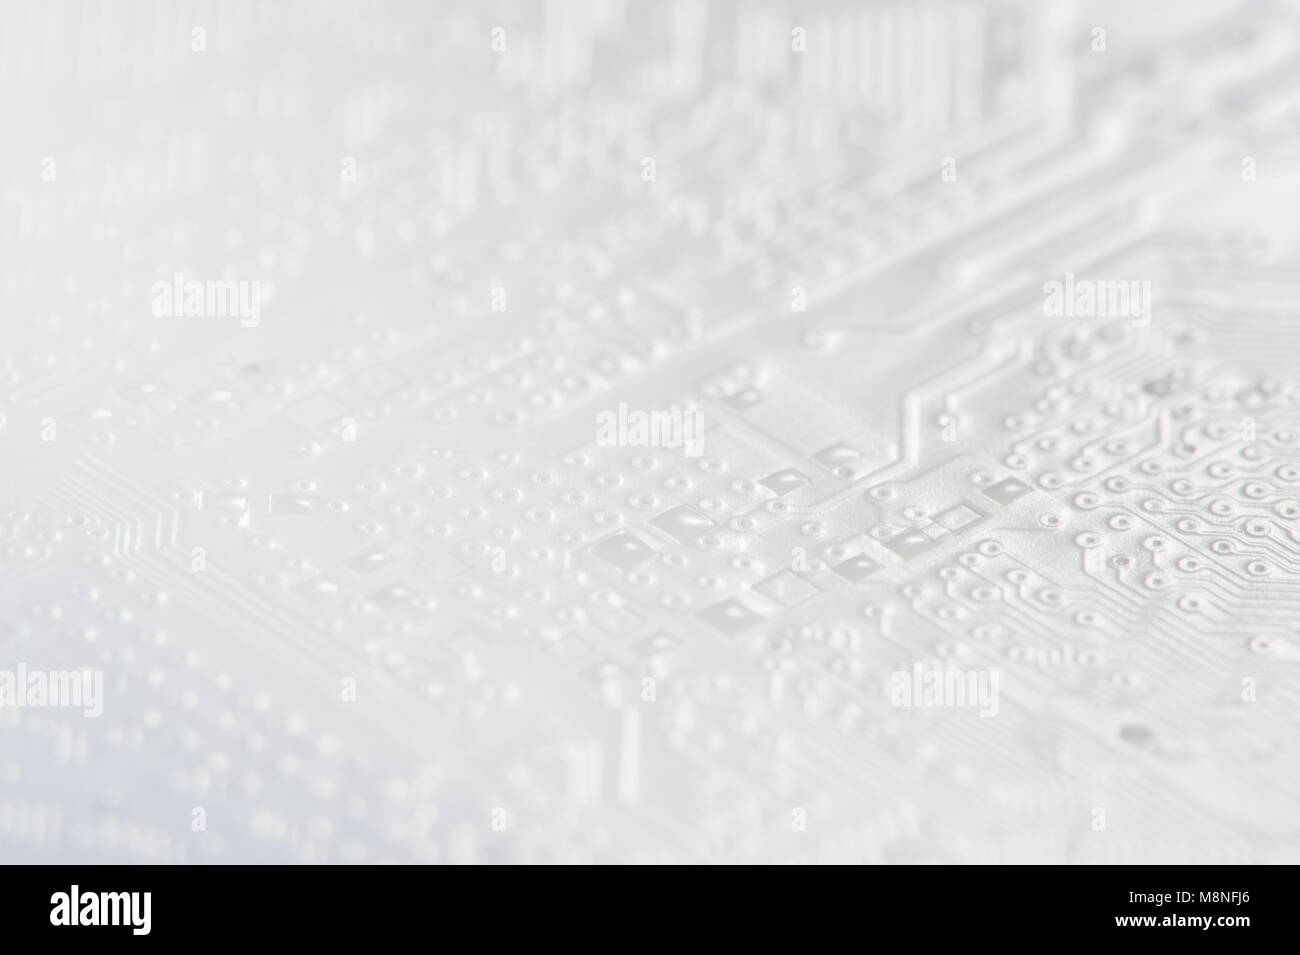 Electronic Circuit Background Stock Photo 177494190 Alamy Basics Of